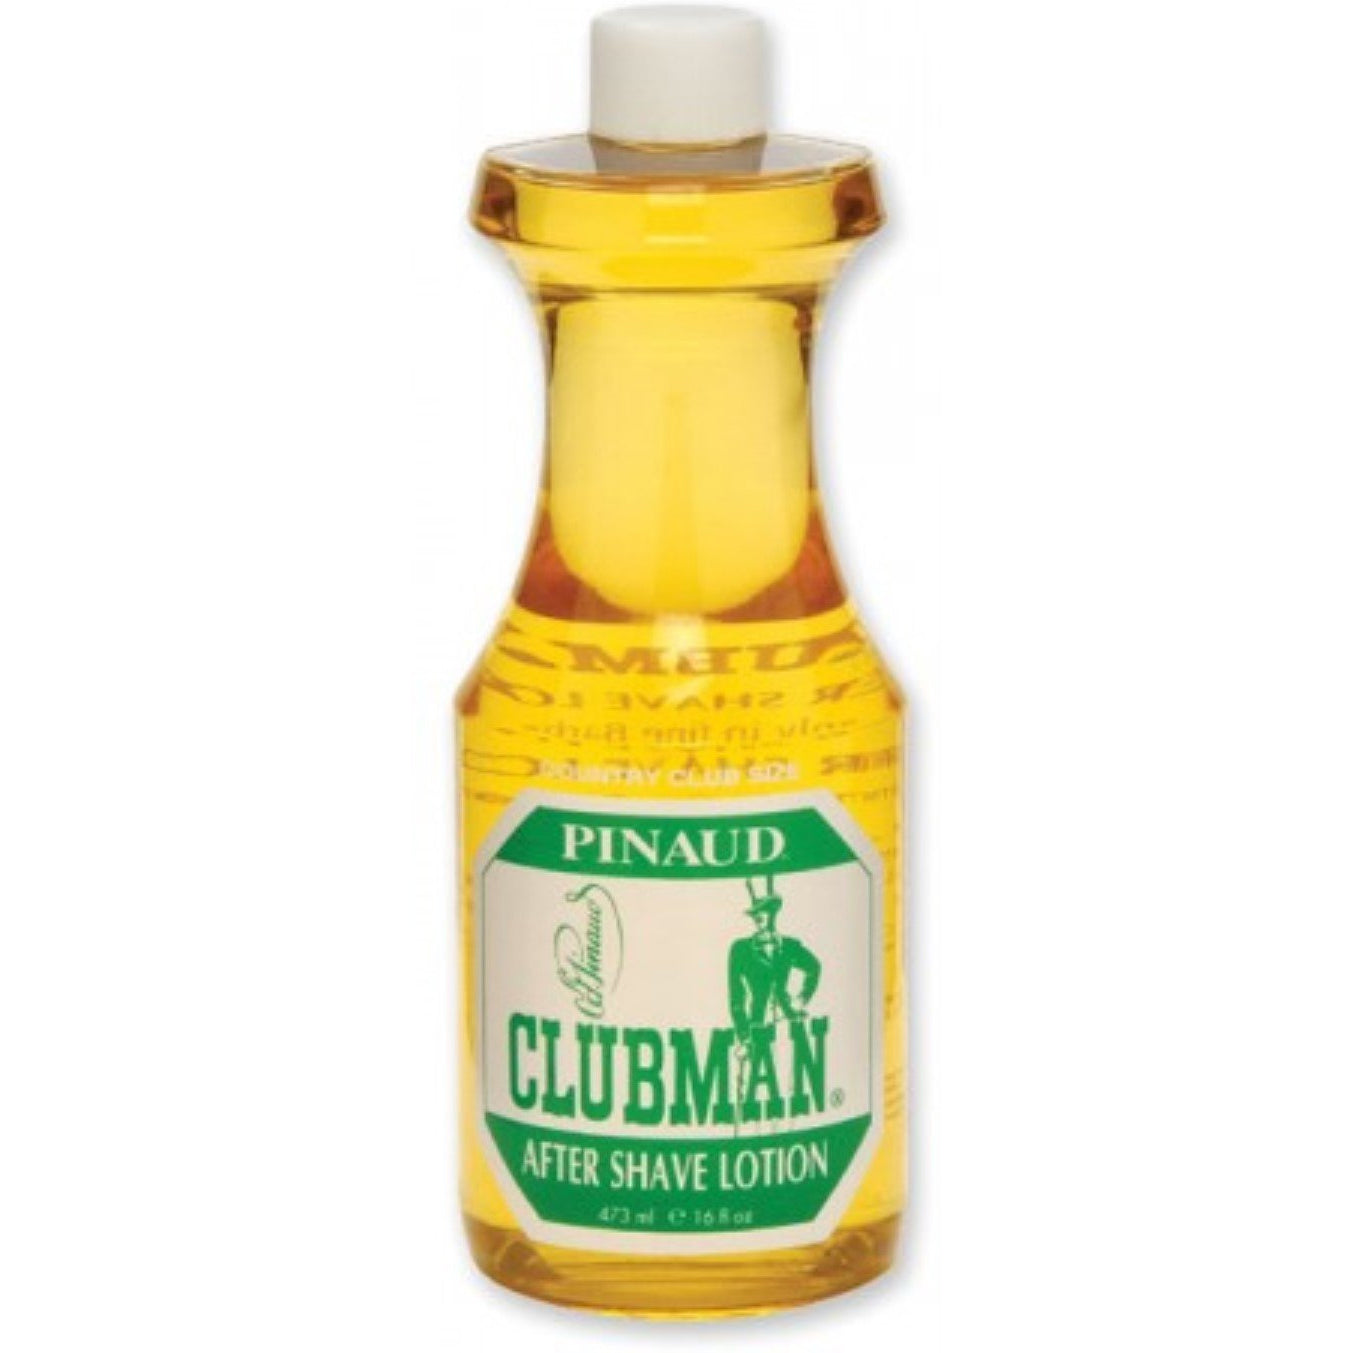 Clubman Pinaud After Shave Lotion, 16 Oz.